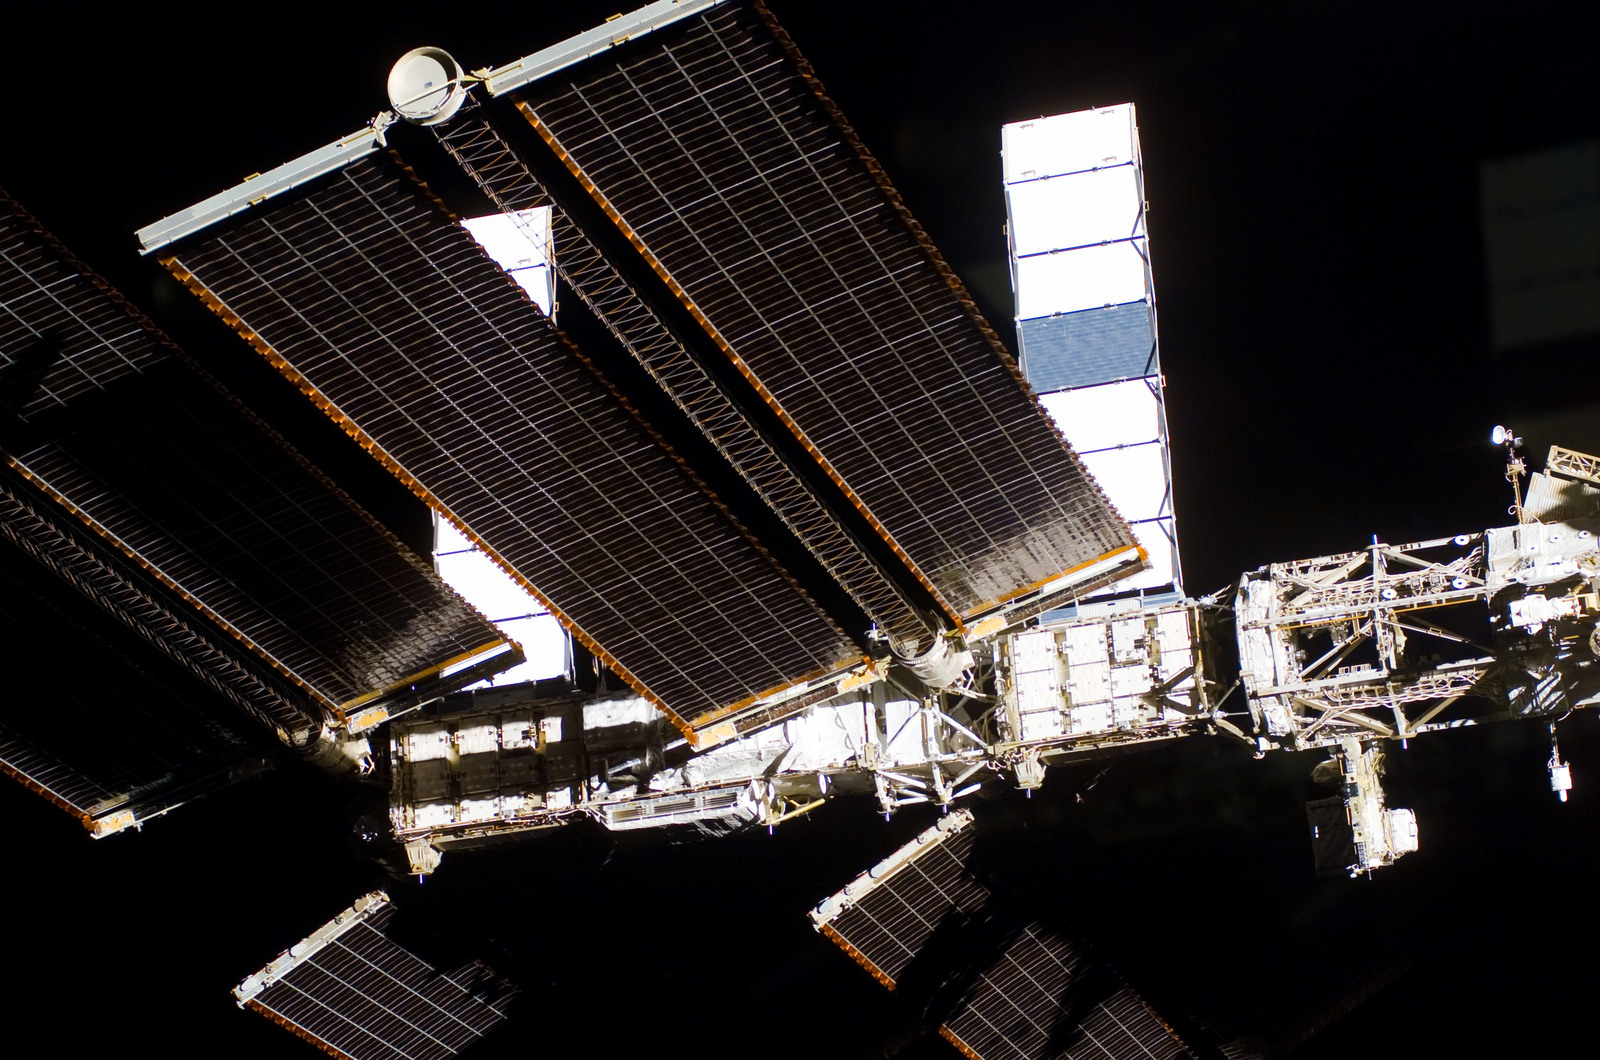 S122E009948 - STS-122 - Flyaround view of ISS after STS-122 Undocking